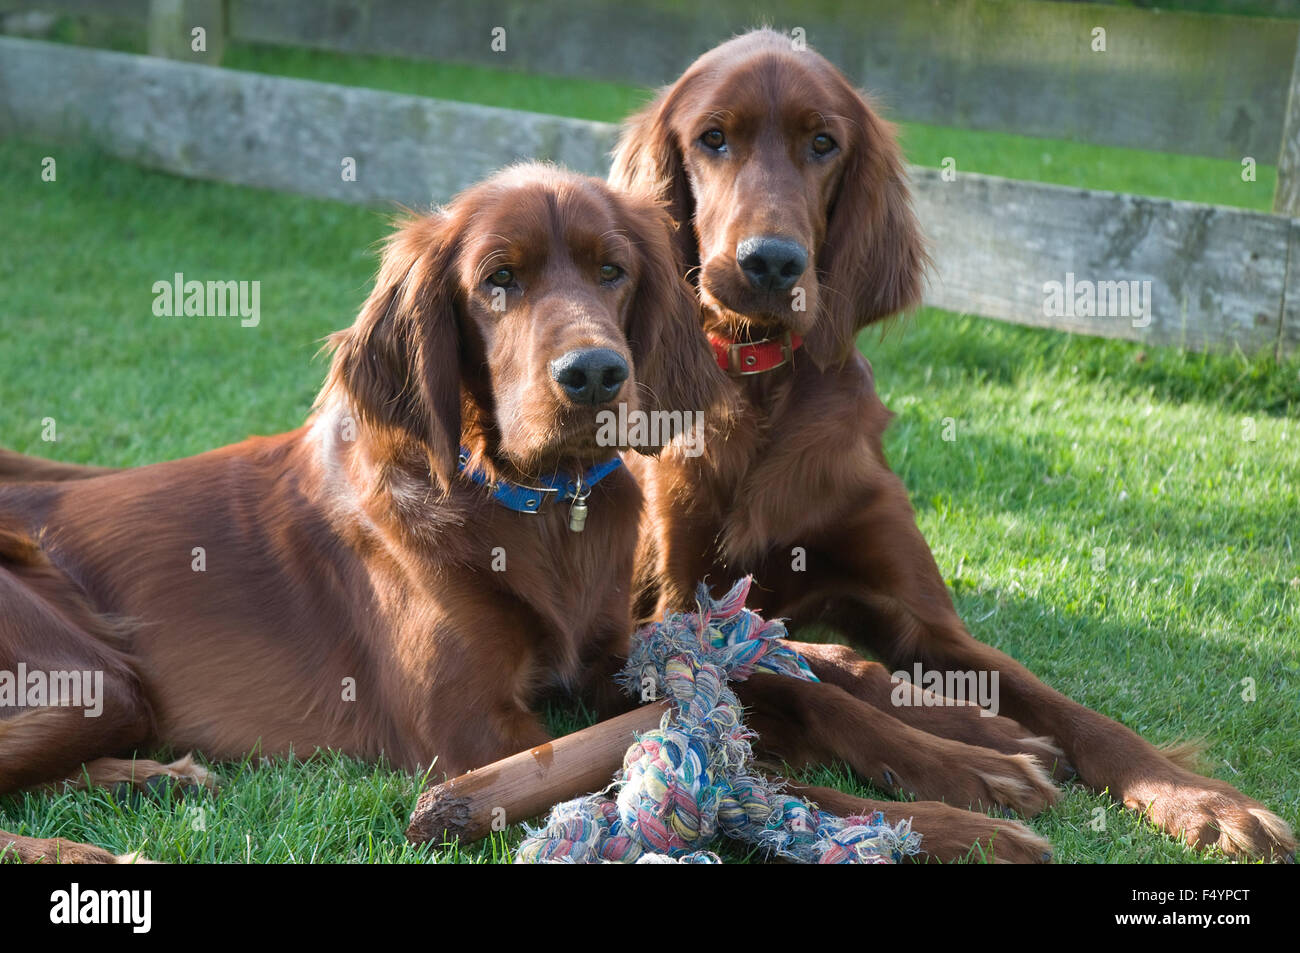 Two young Irish Setters - Stock Image